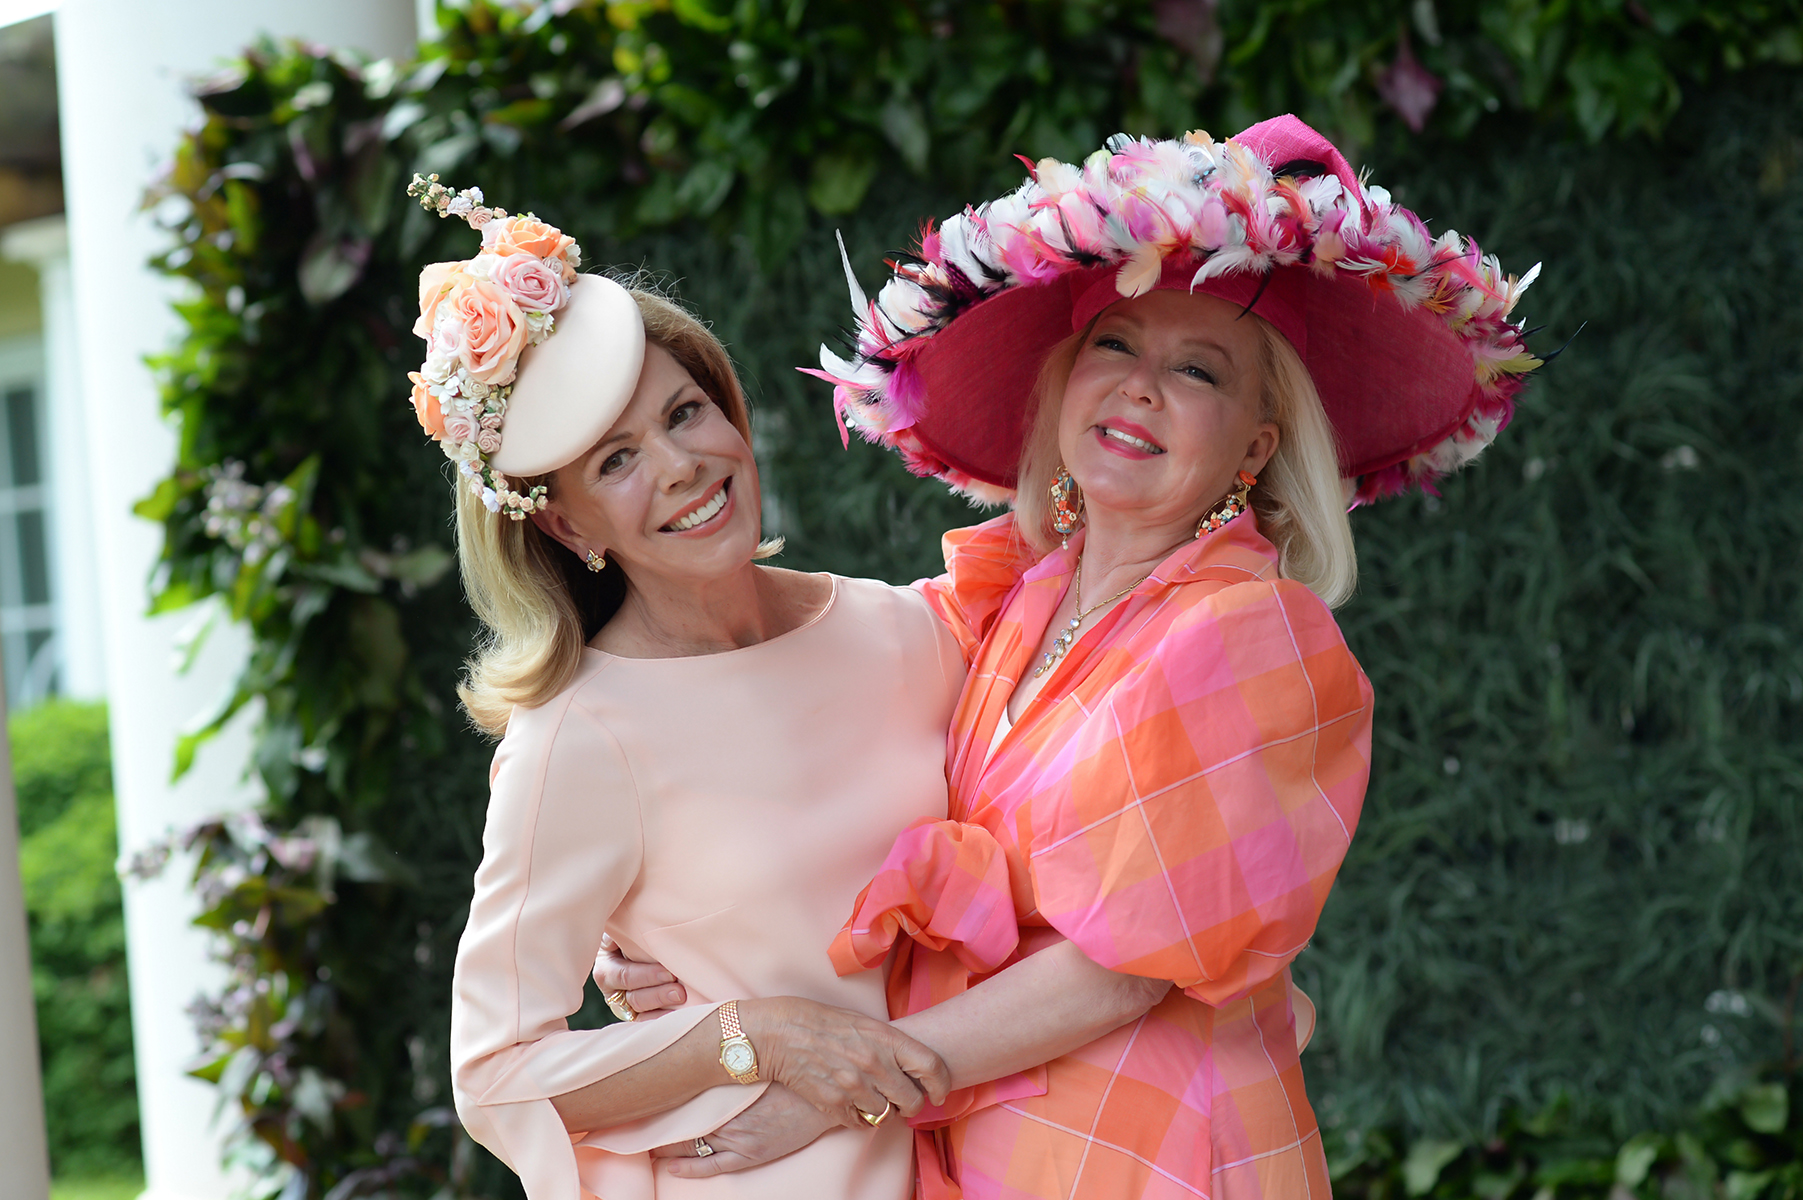 Pam Warlick (left) and Pam Stowe at Hats in the Garden